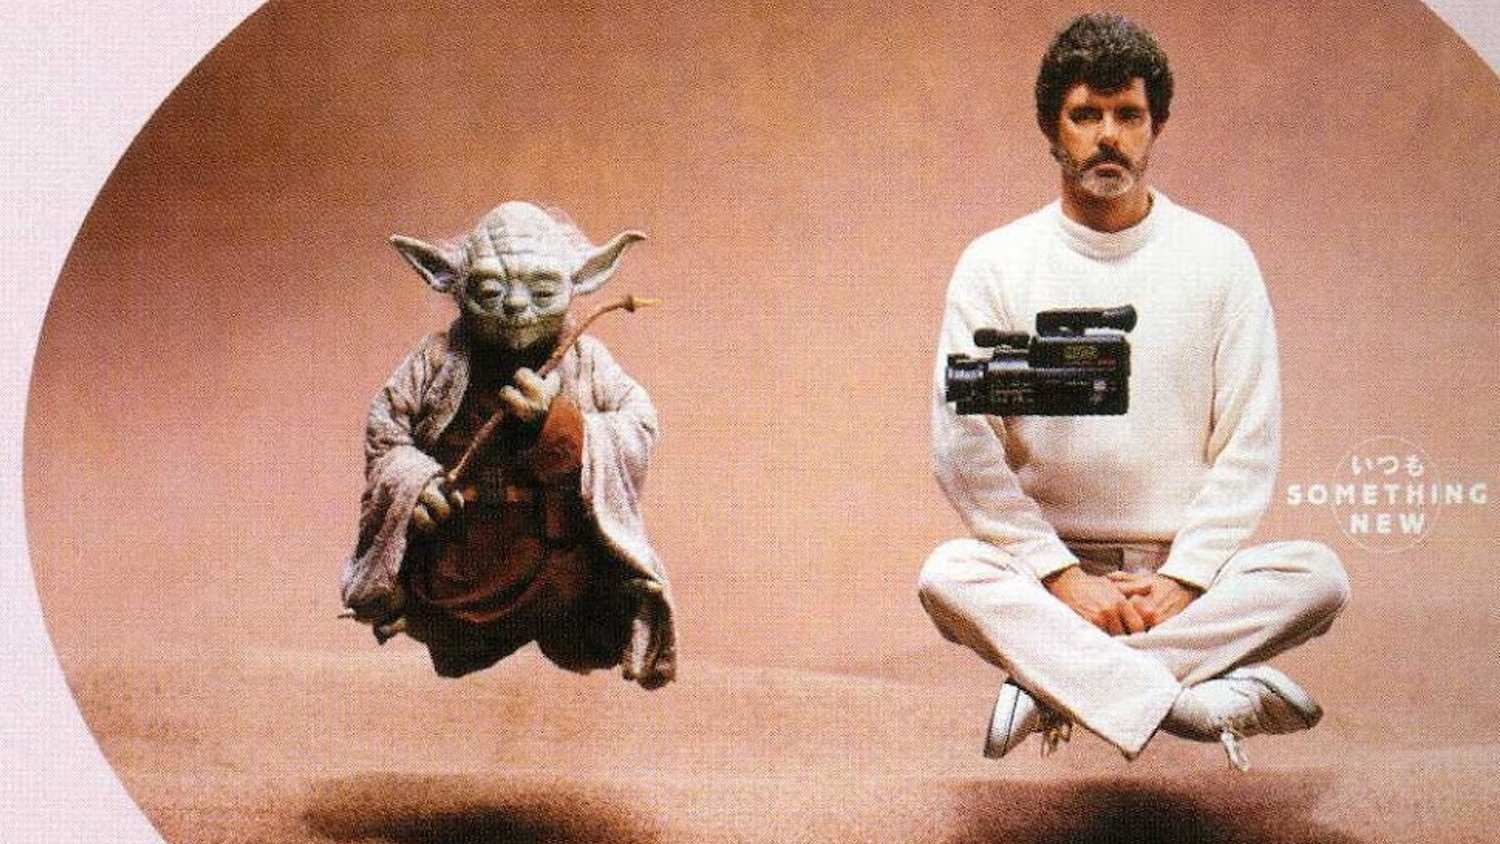 These 1987 STAR WARS-Themed Japanese Panasonic Ads Starring George Lucas Are Strangely Cool